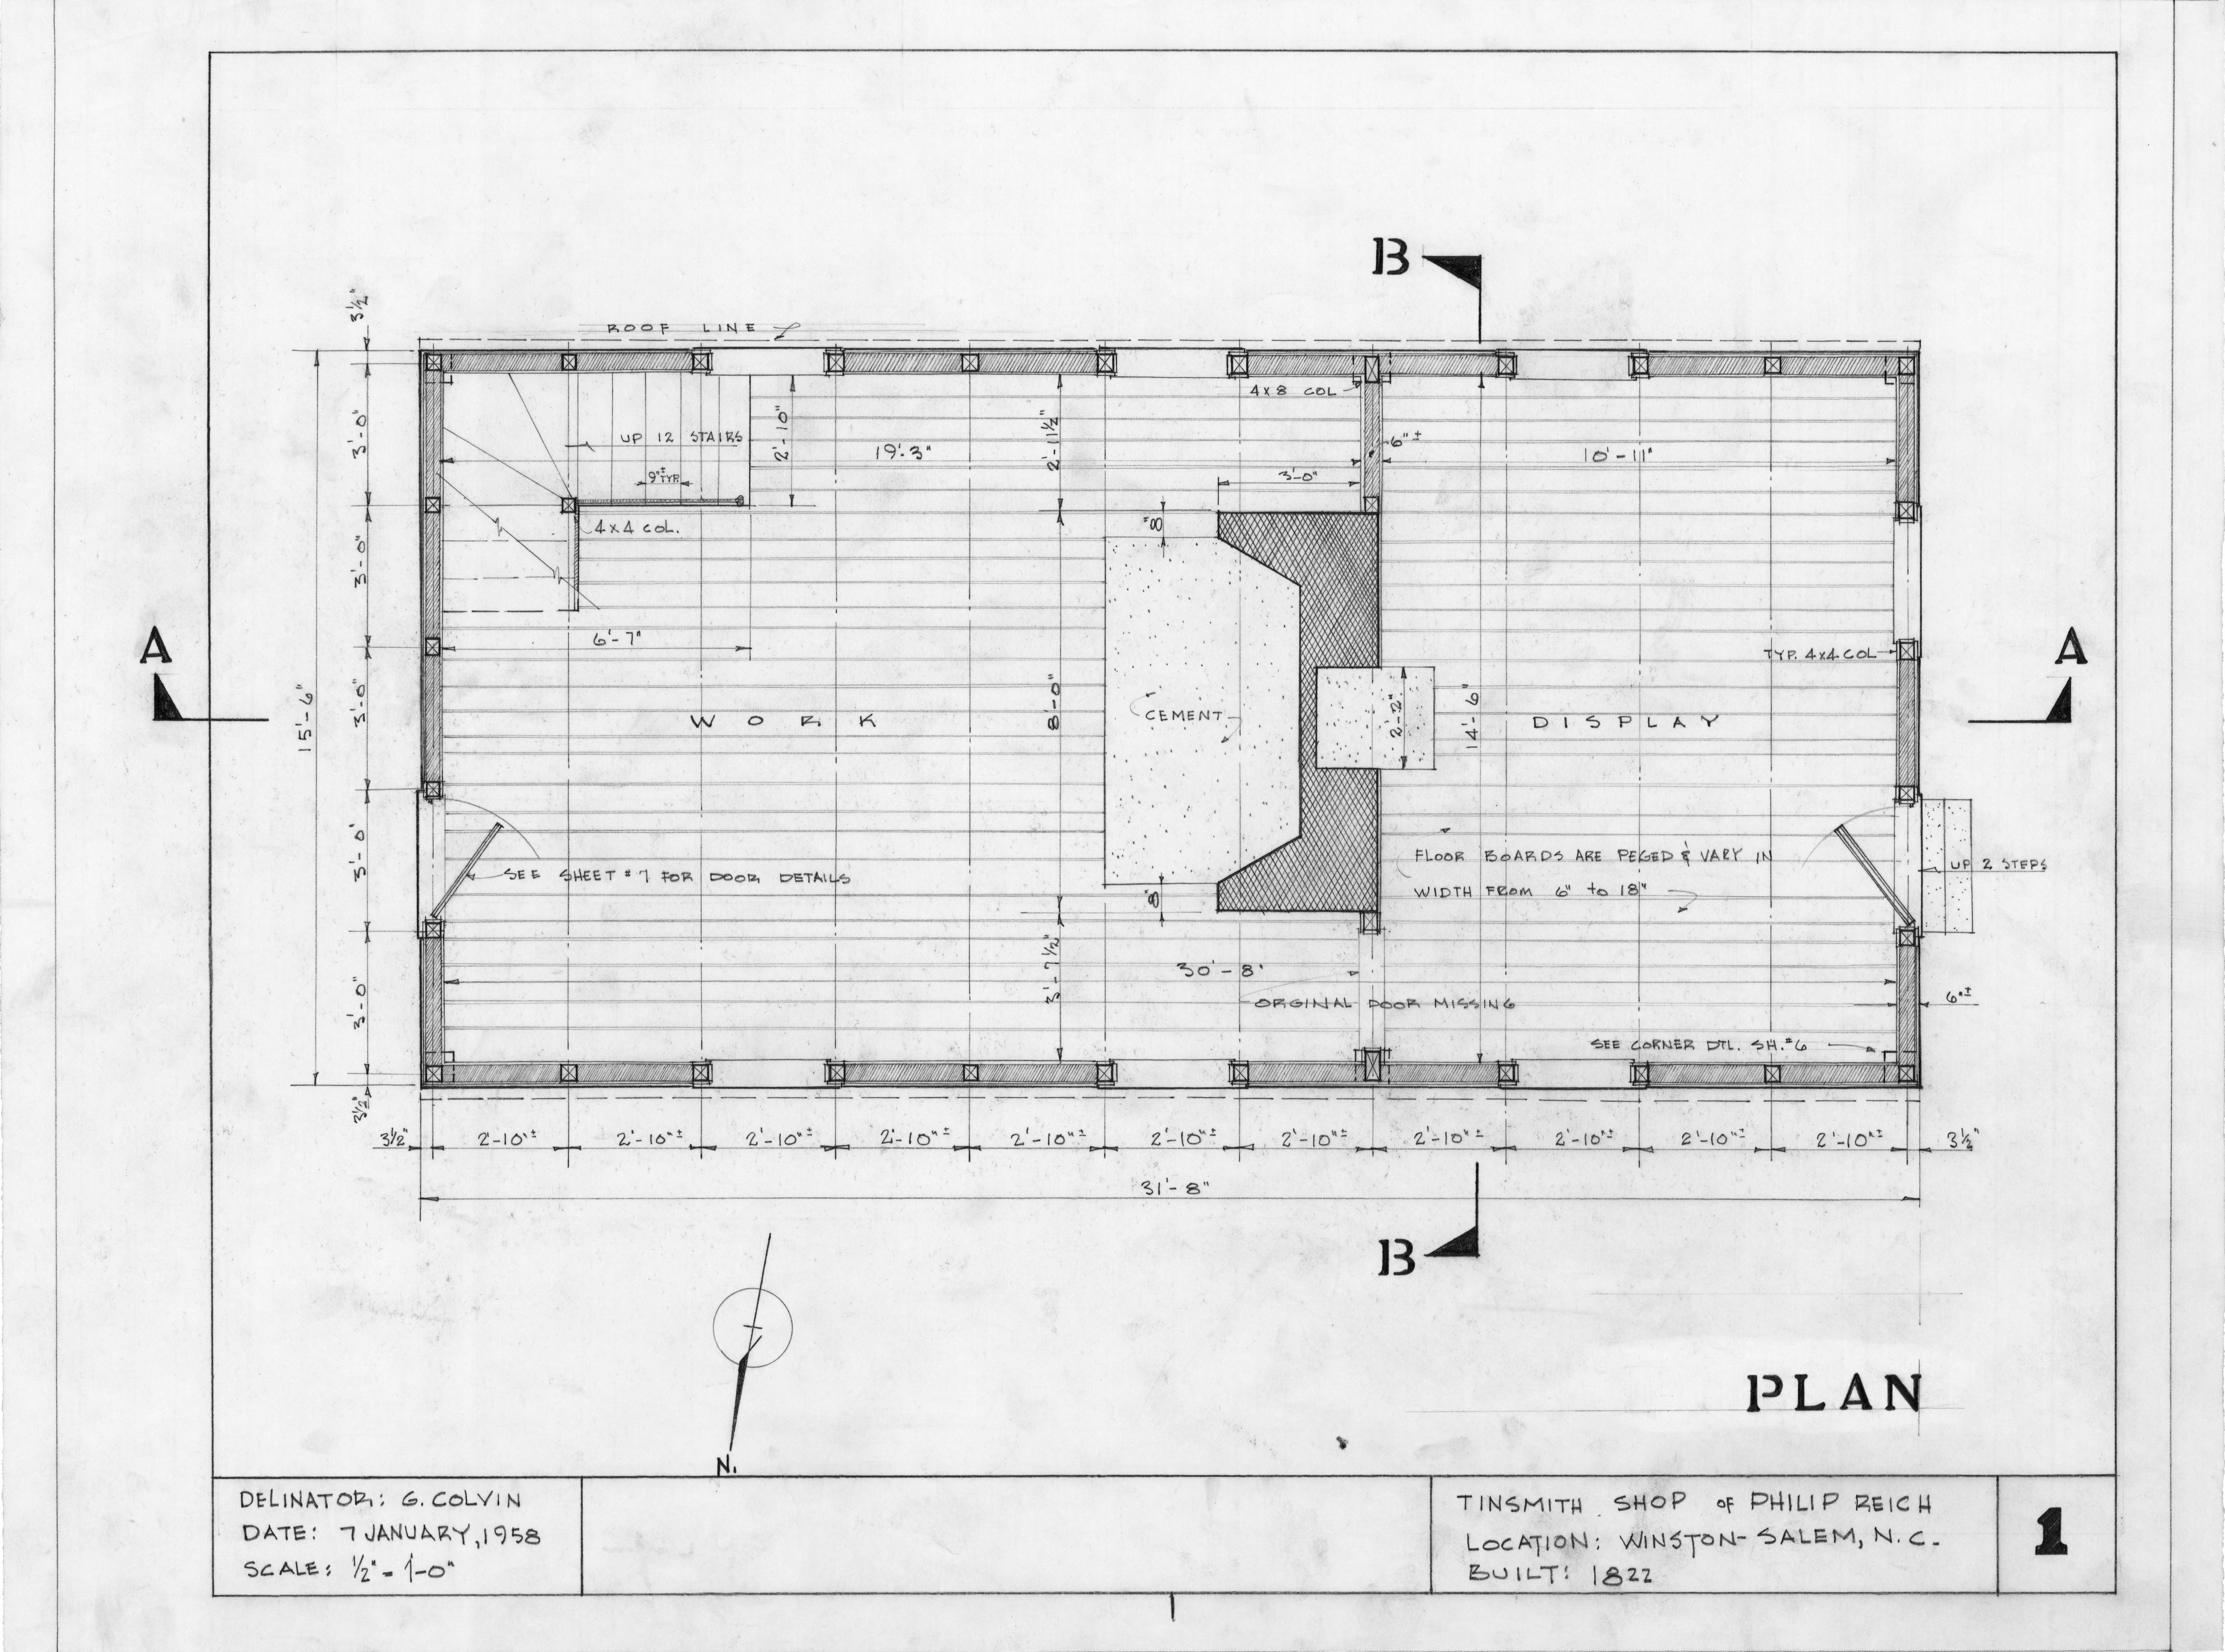 floor plan philip reich house and shop winston salem north carolina house shop attached pictures amp plans post yours here pirate4x4 com